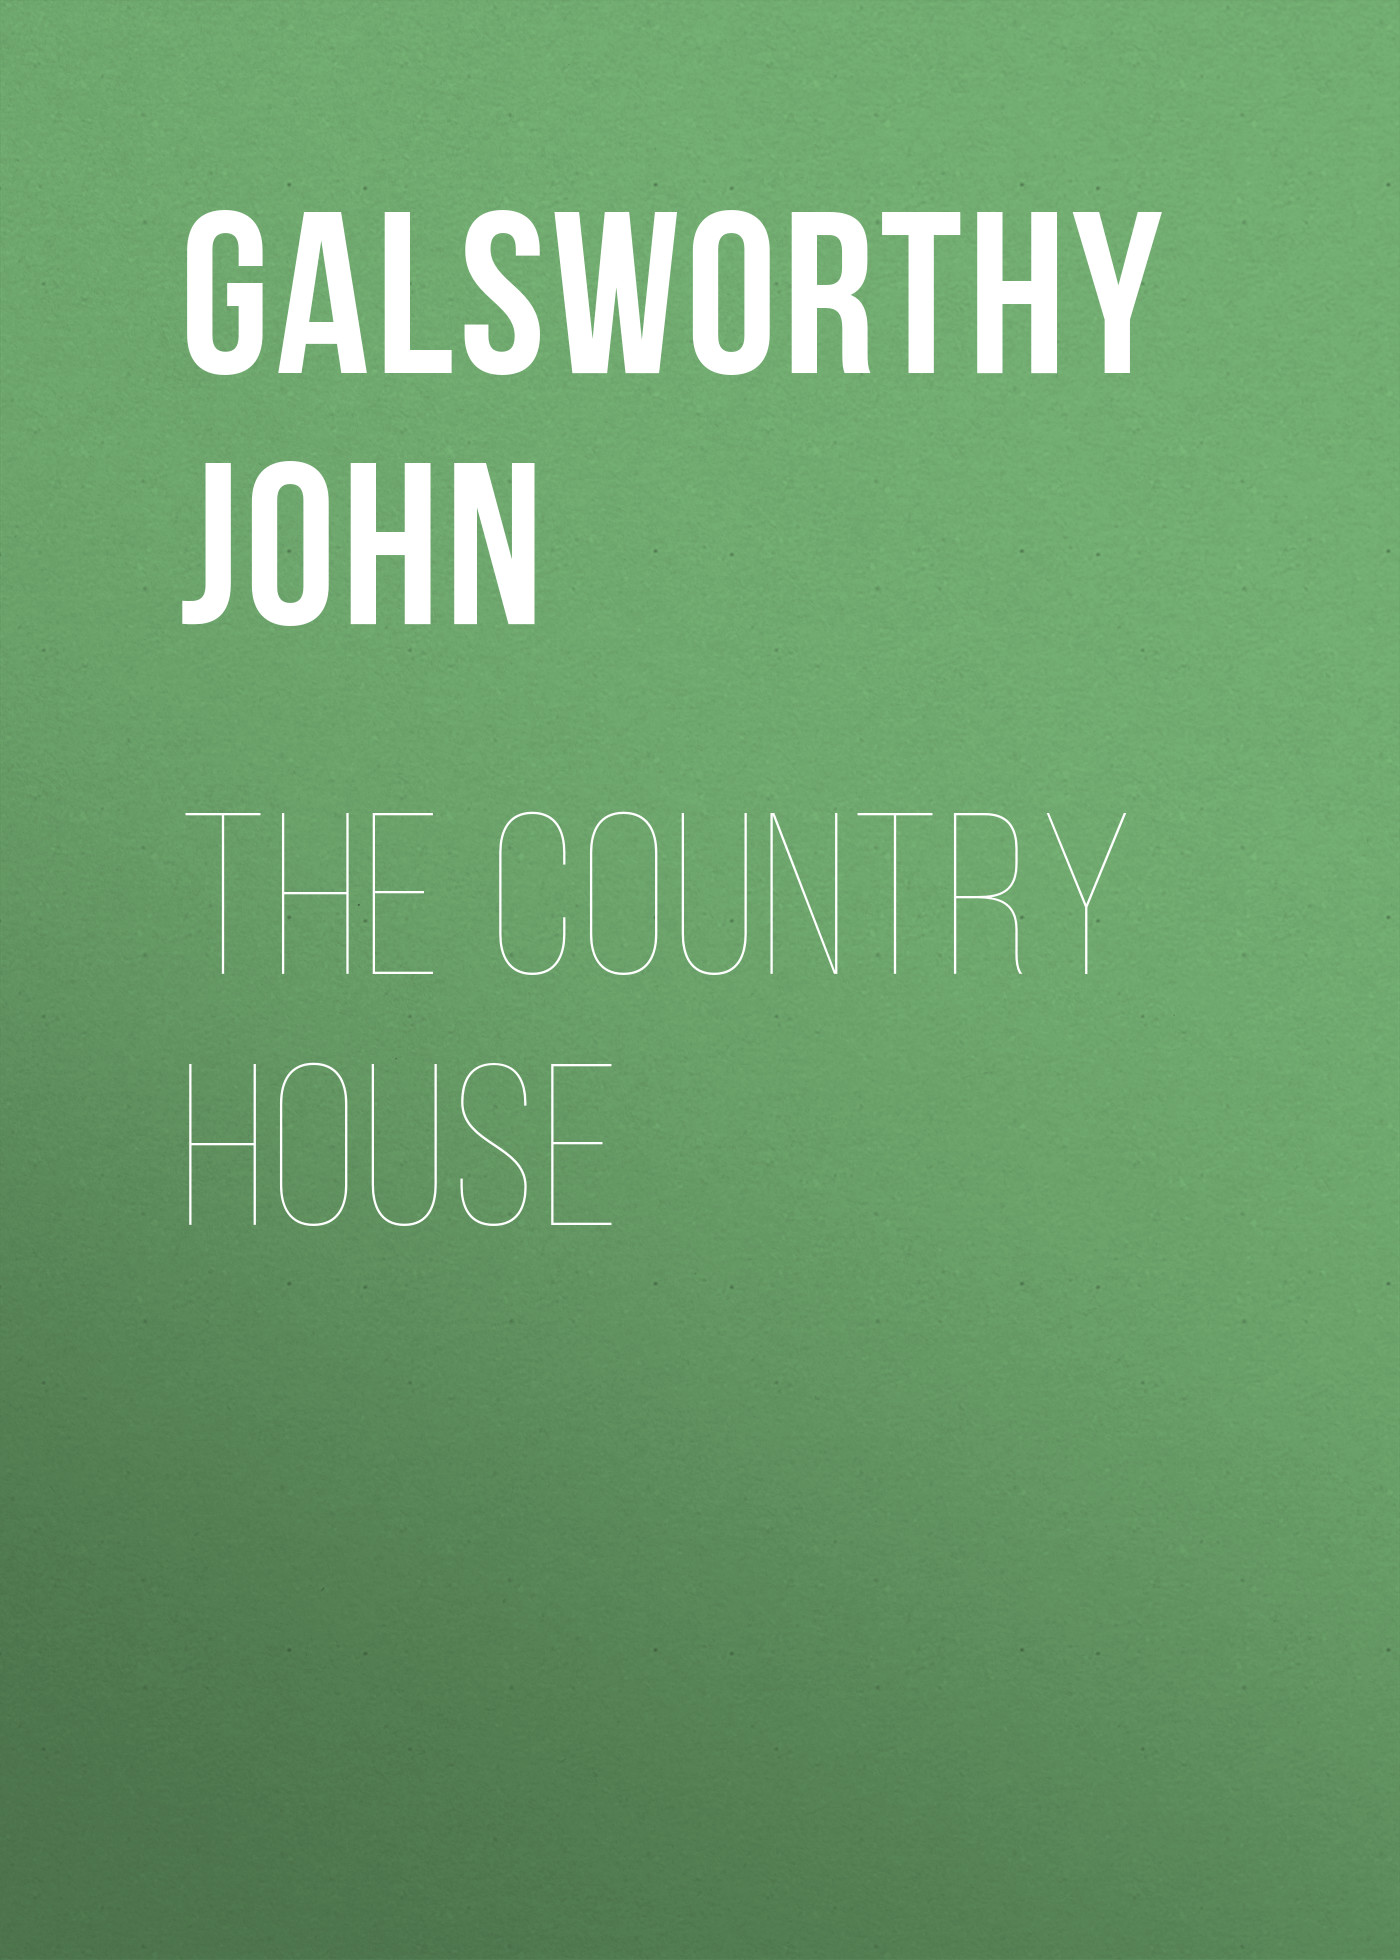 Galsworthy John The Country House country house garden